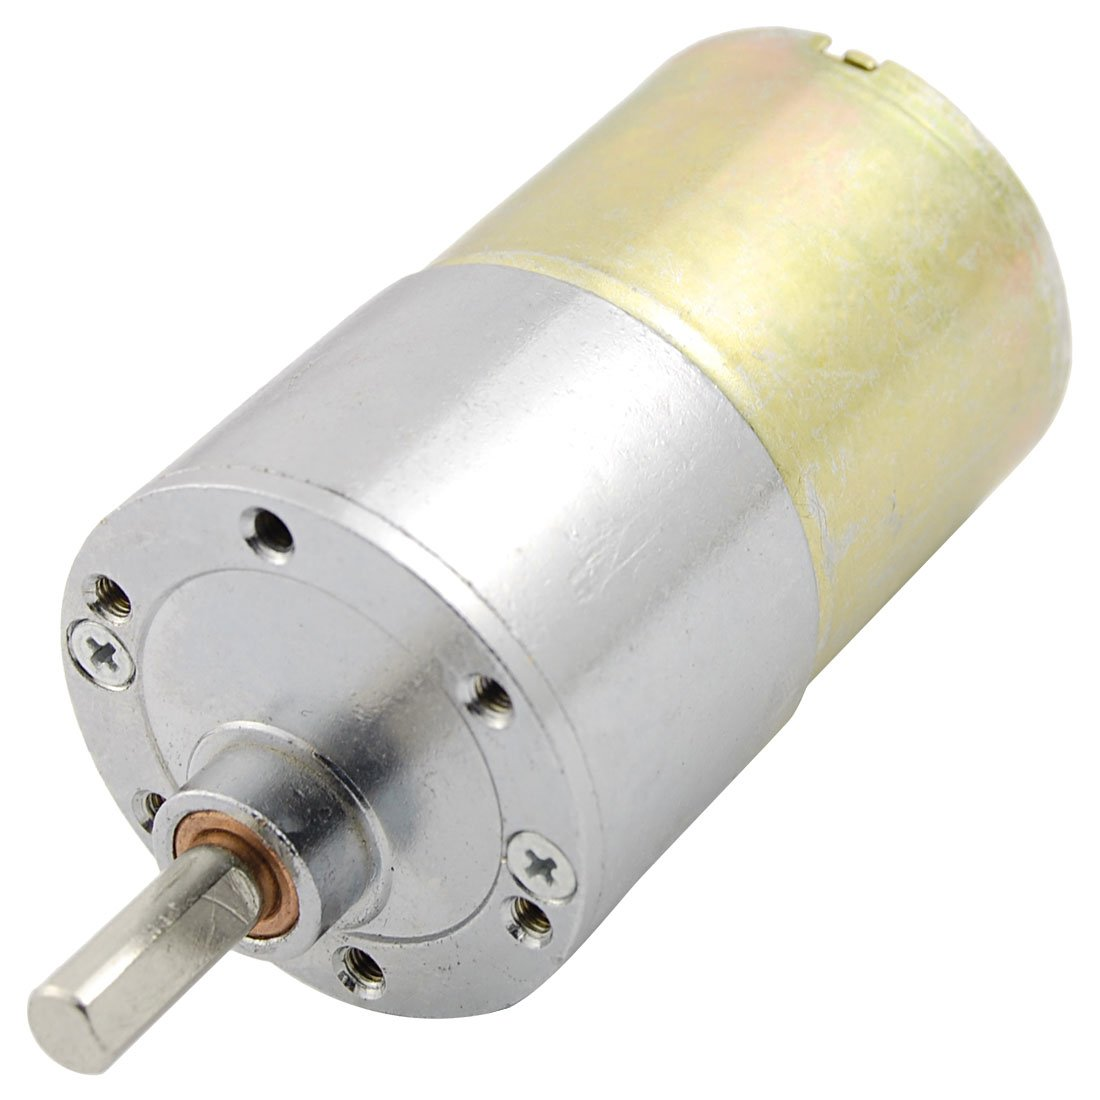 uxcell® 12VDC 160mA 100RPM 2.04Kg-cm High Torque Permanent Magnetic Gear Motor by uxcell